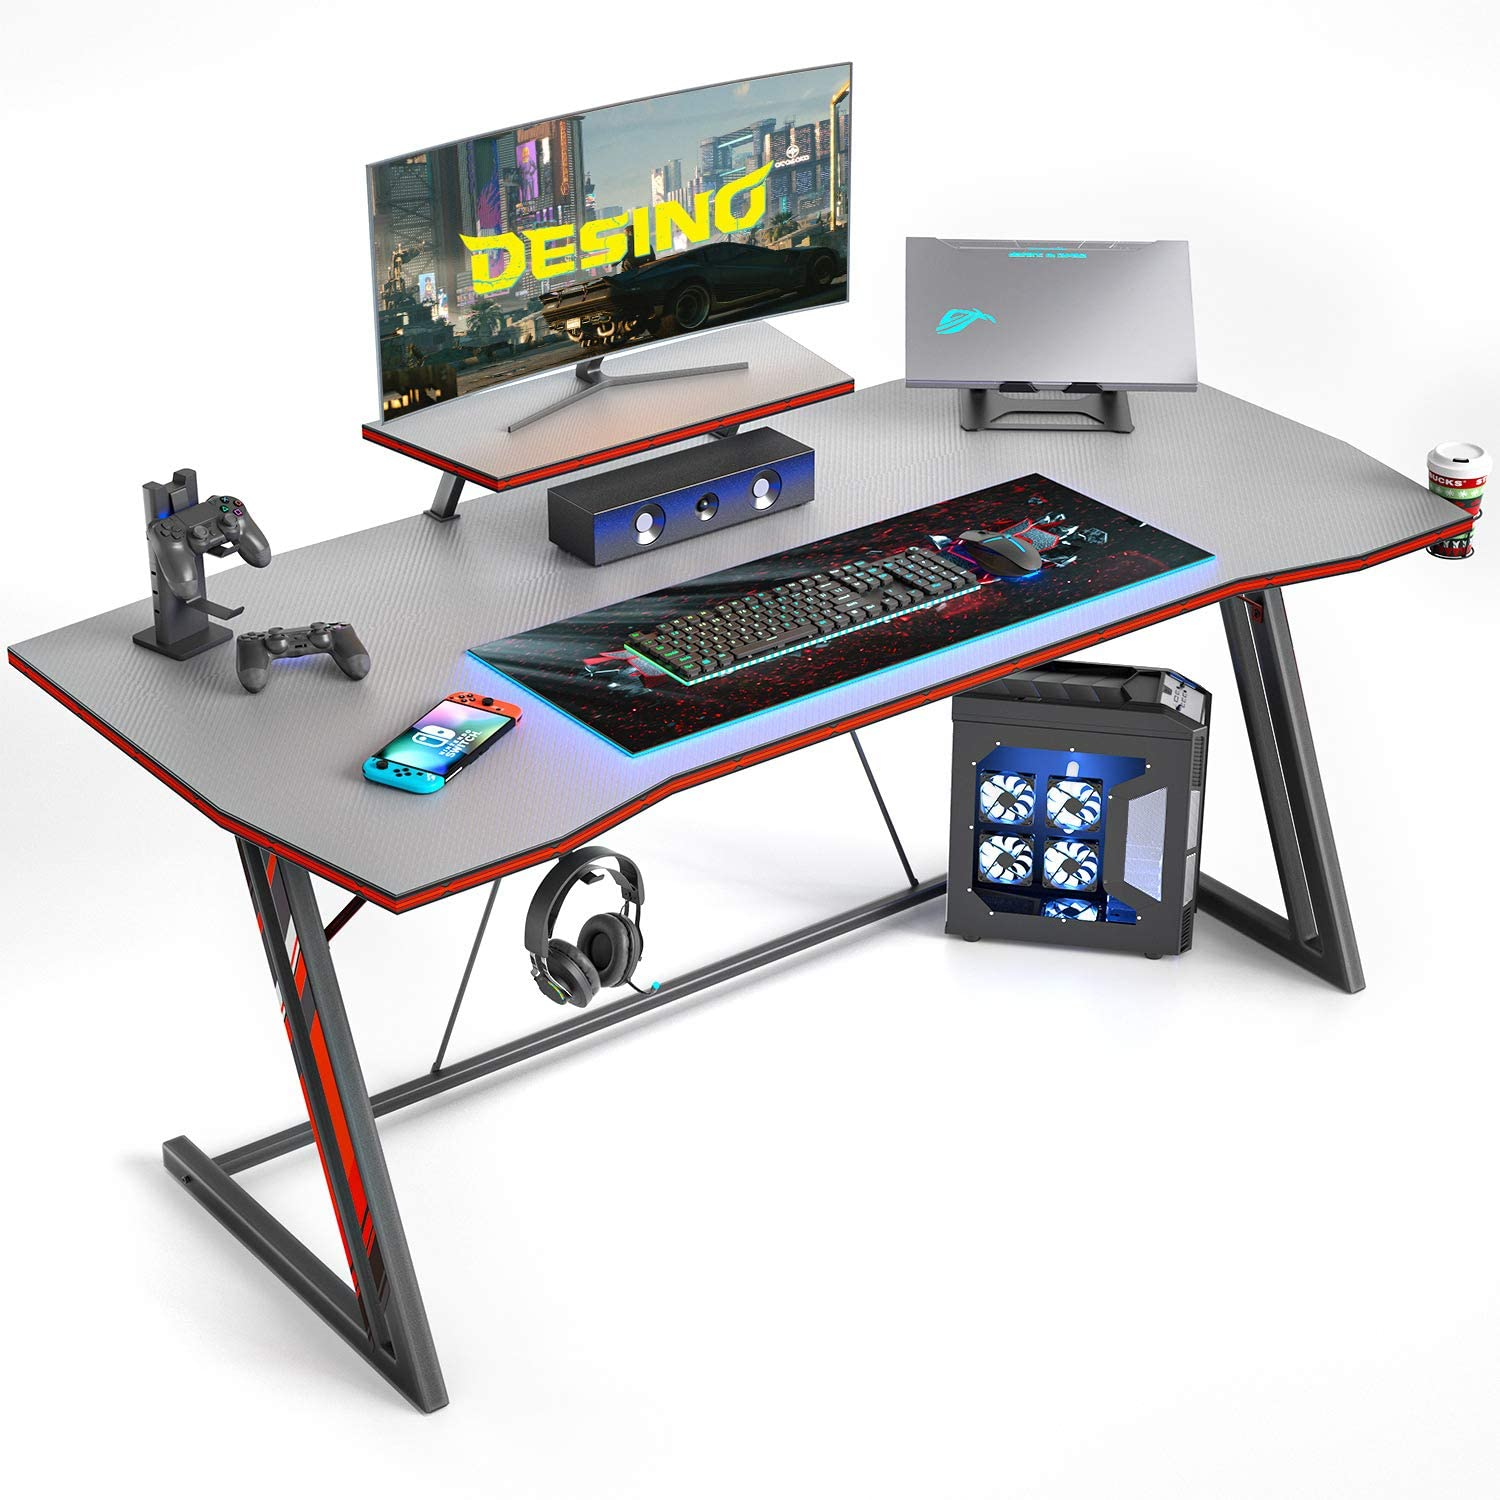 DESINO Gaming Desk 47 inch PC Computer Desk, Home Office Desk Gaming Table Z Shaped Gamer Workstation with Cup Holder and Headphone Hook, Gray